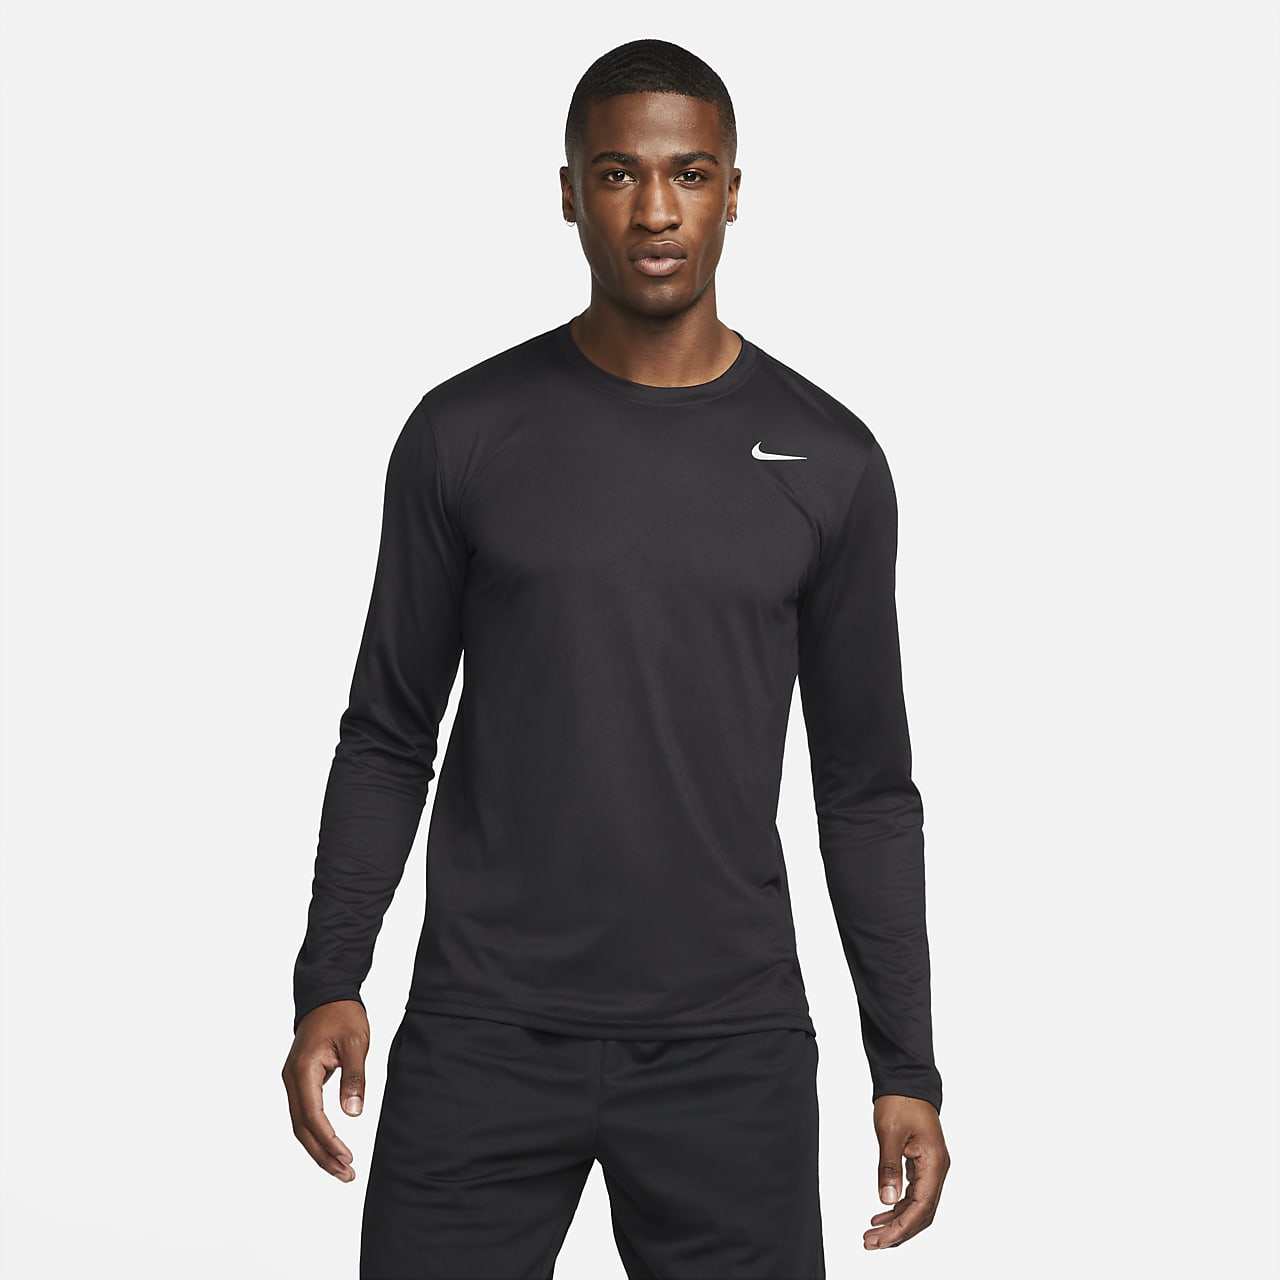 7b9832873c4d Nike Dri-FIT Legend 2.0 Men s Long-Sleeve Training Top. Nike.com